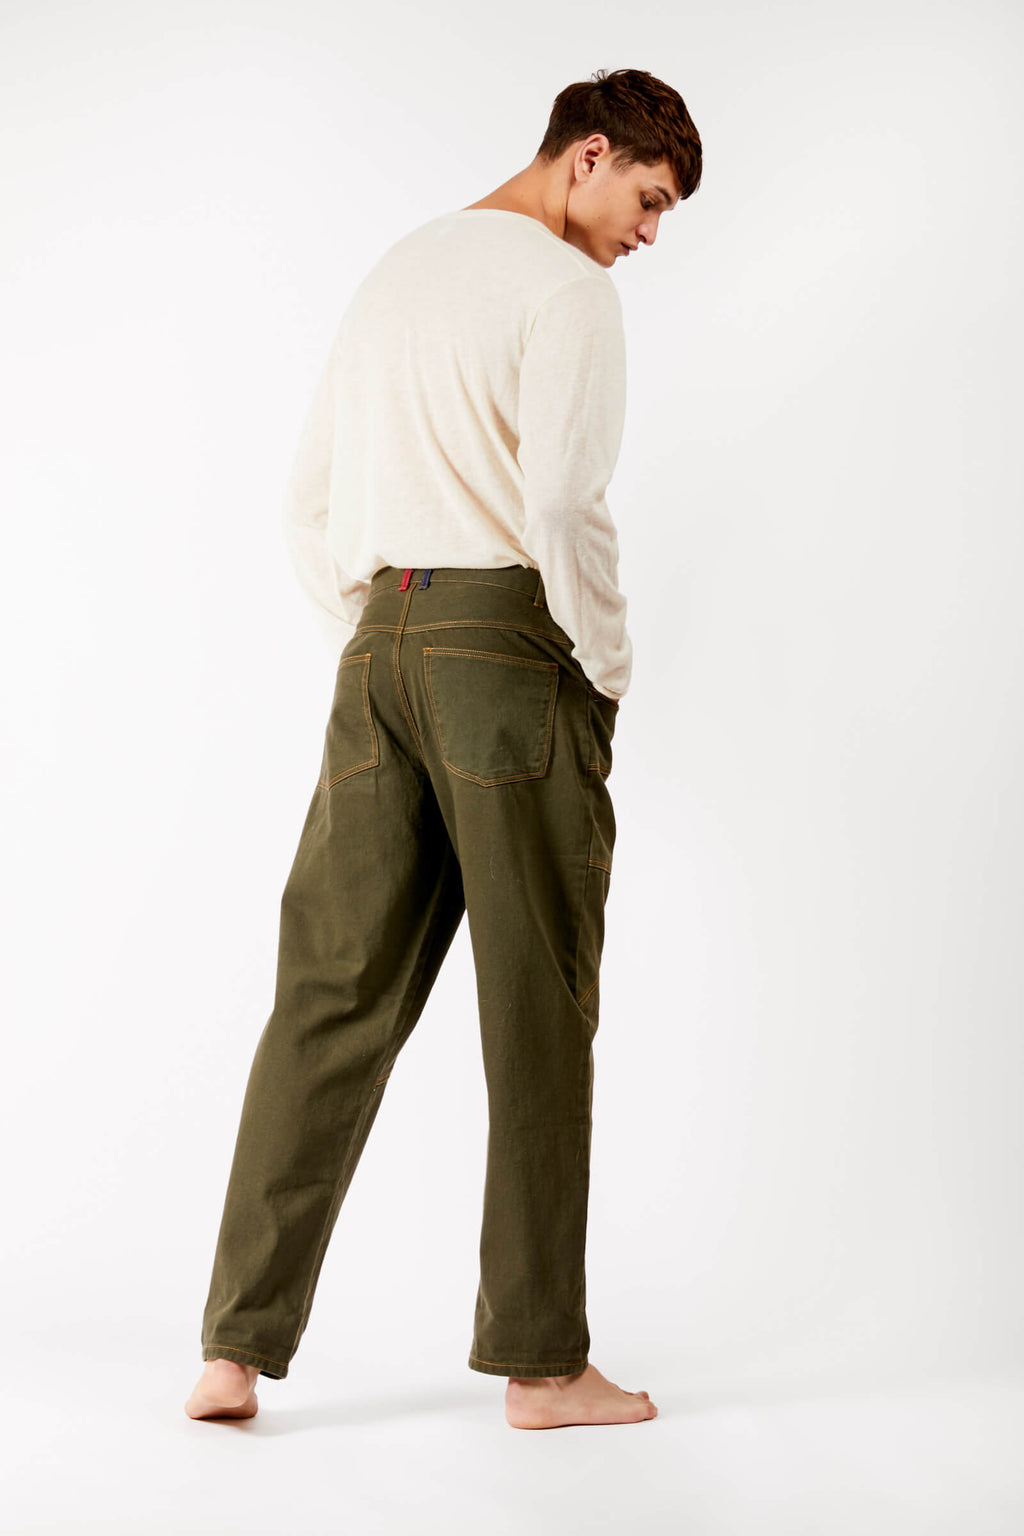 Adrian Schachter Green Denim Trousers